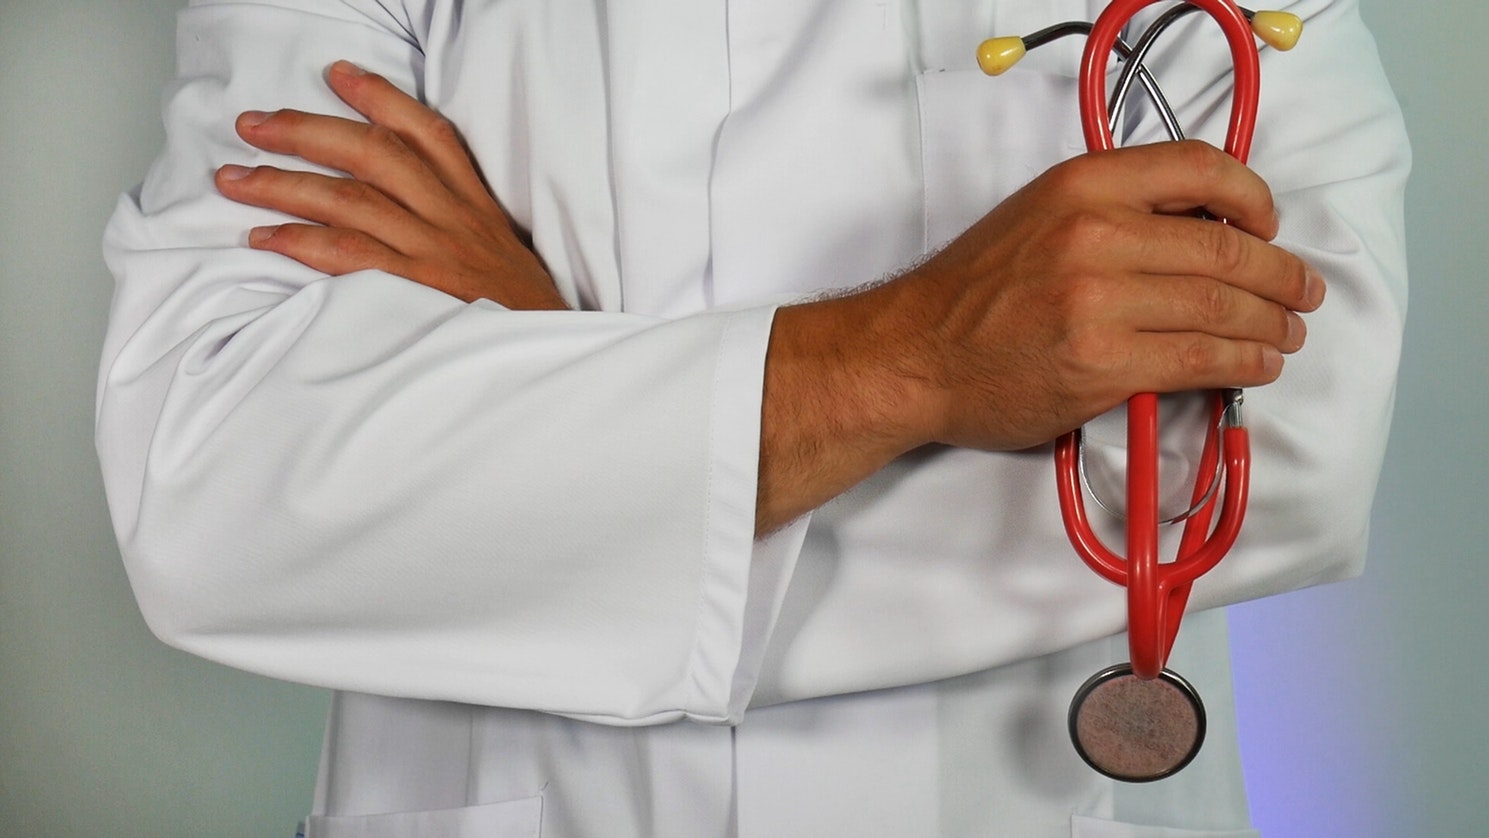 A doctor holding a stethoscope with his arms crossed.